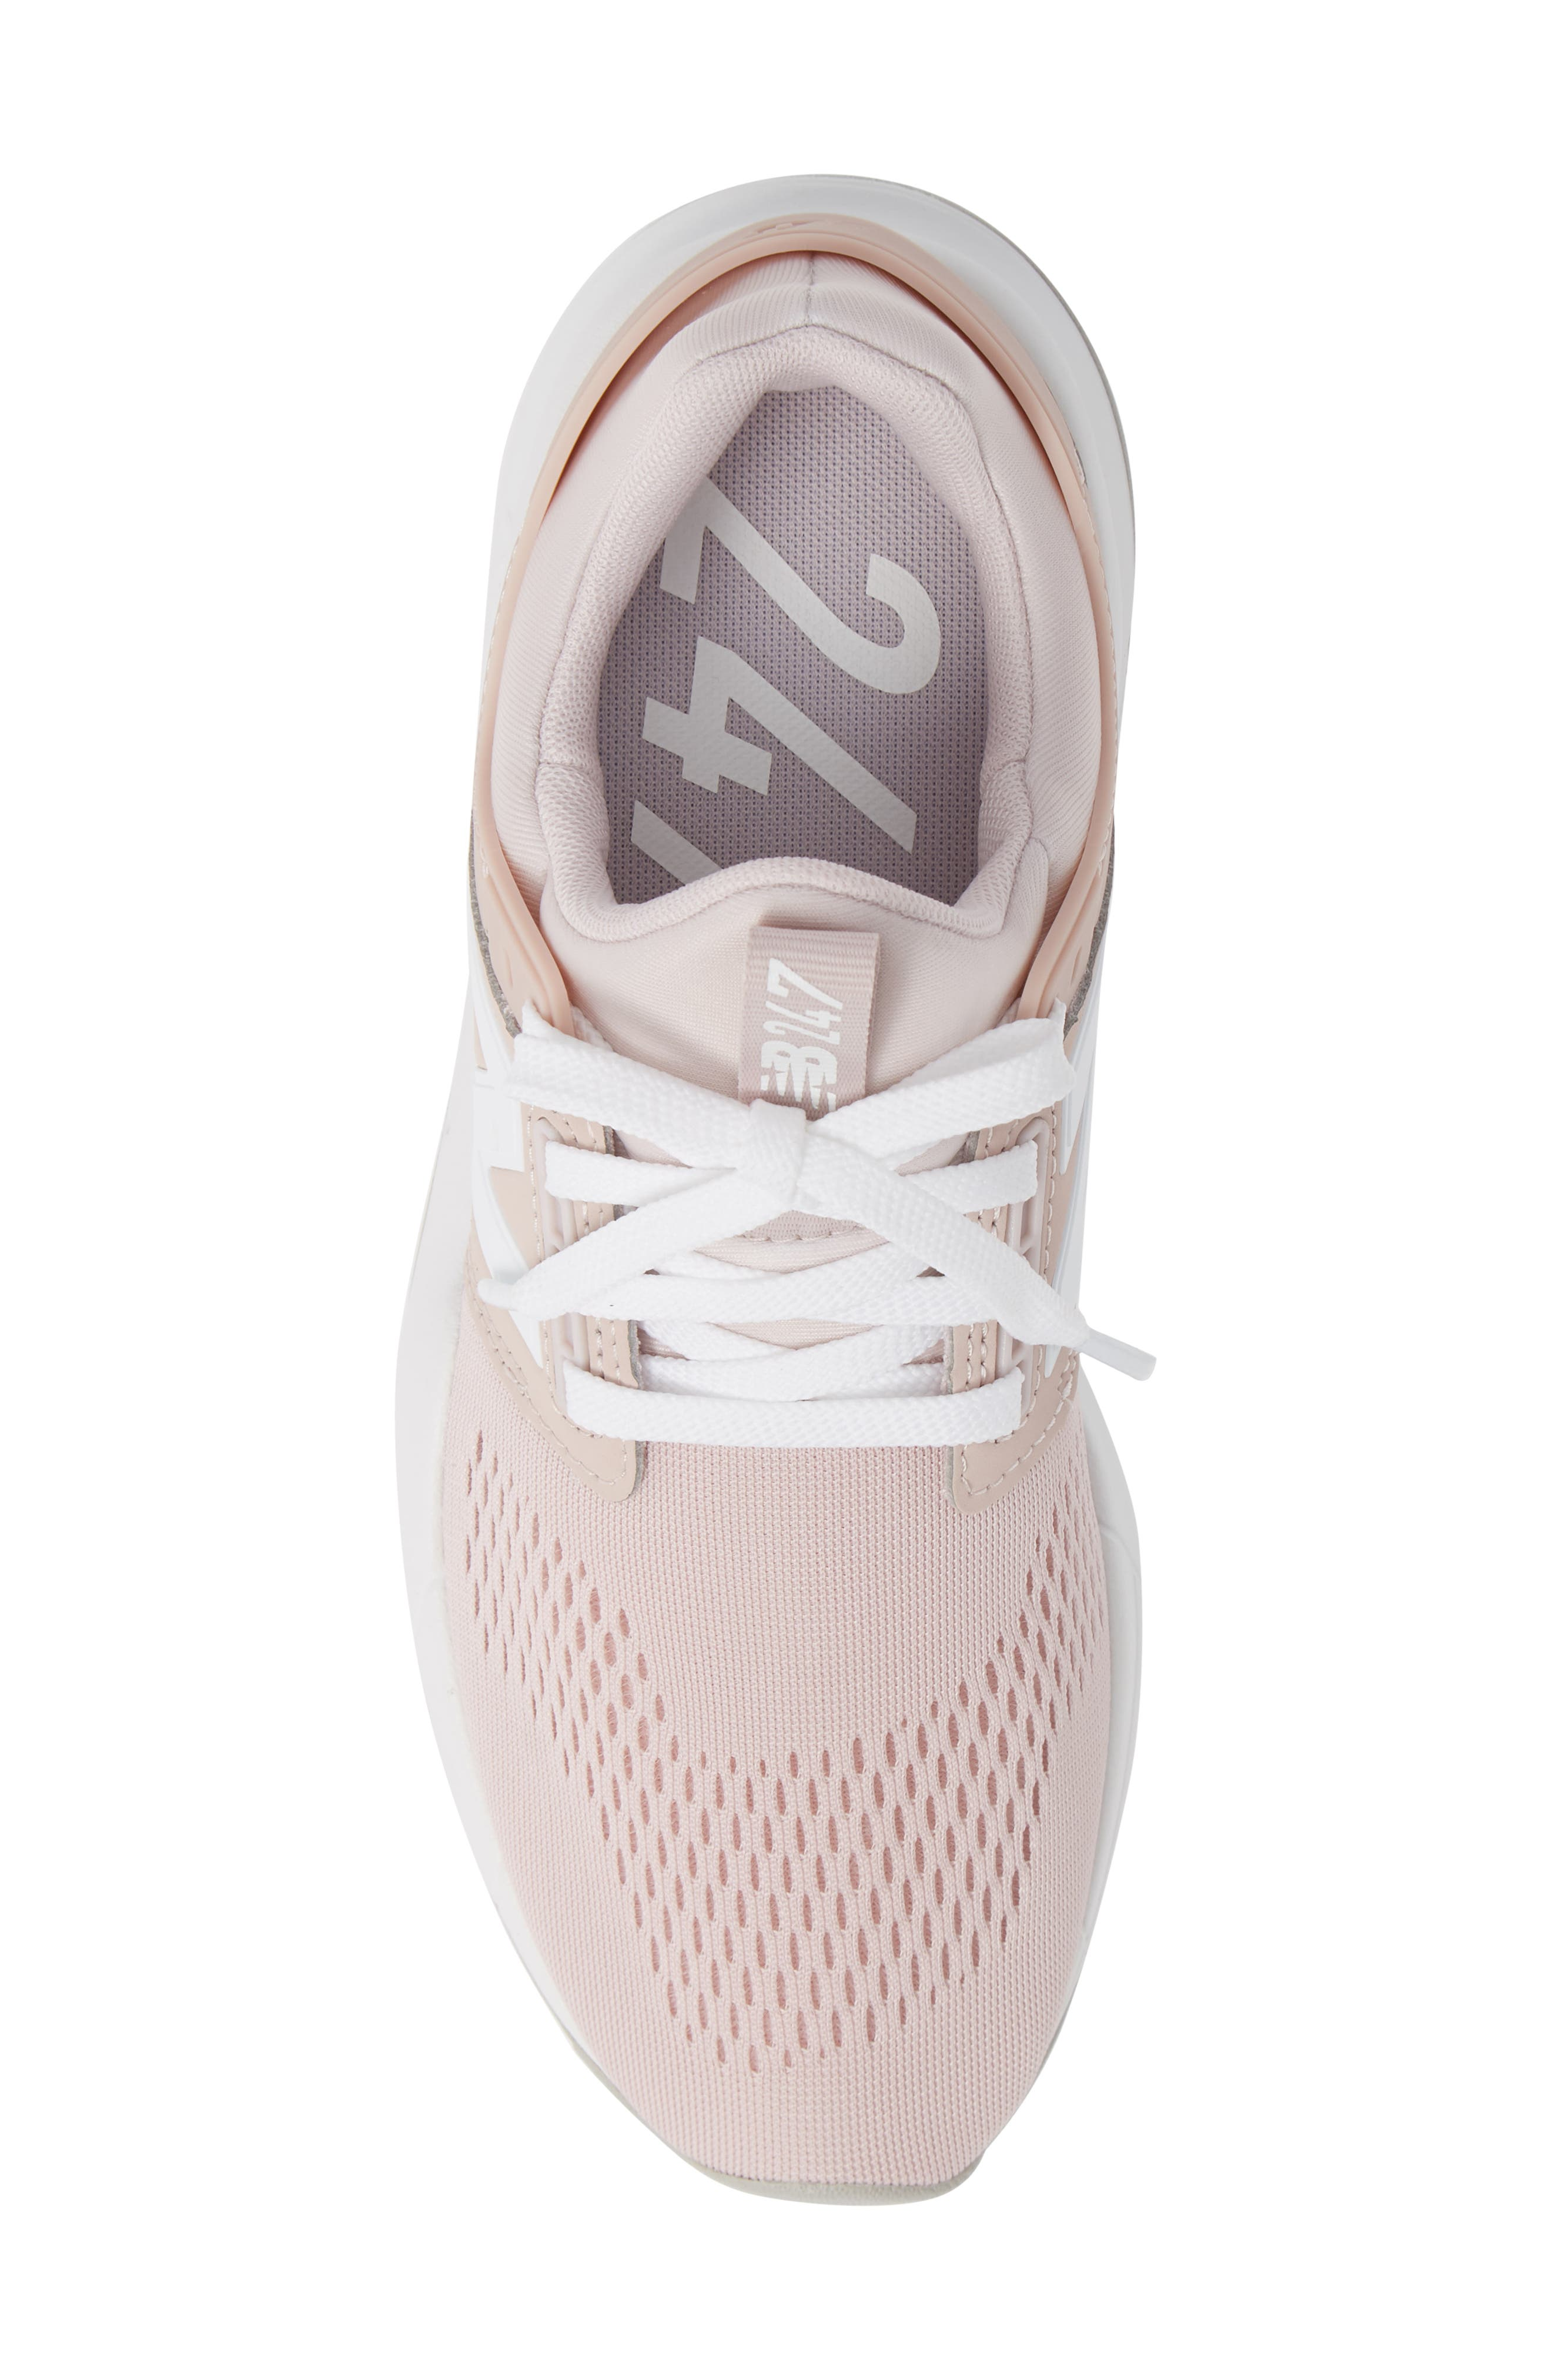 247 Sneaker,                             Alternate thumbnail 5, color,                             CONCH SHELL